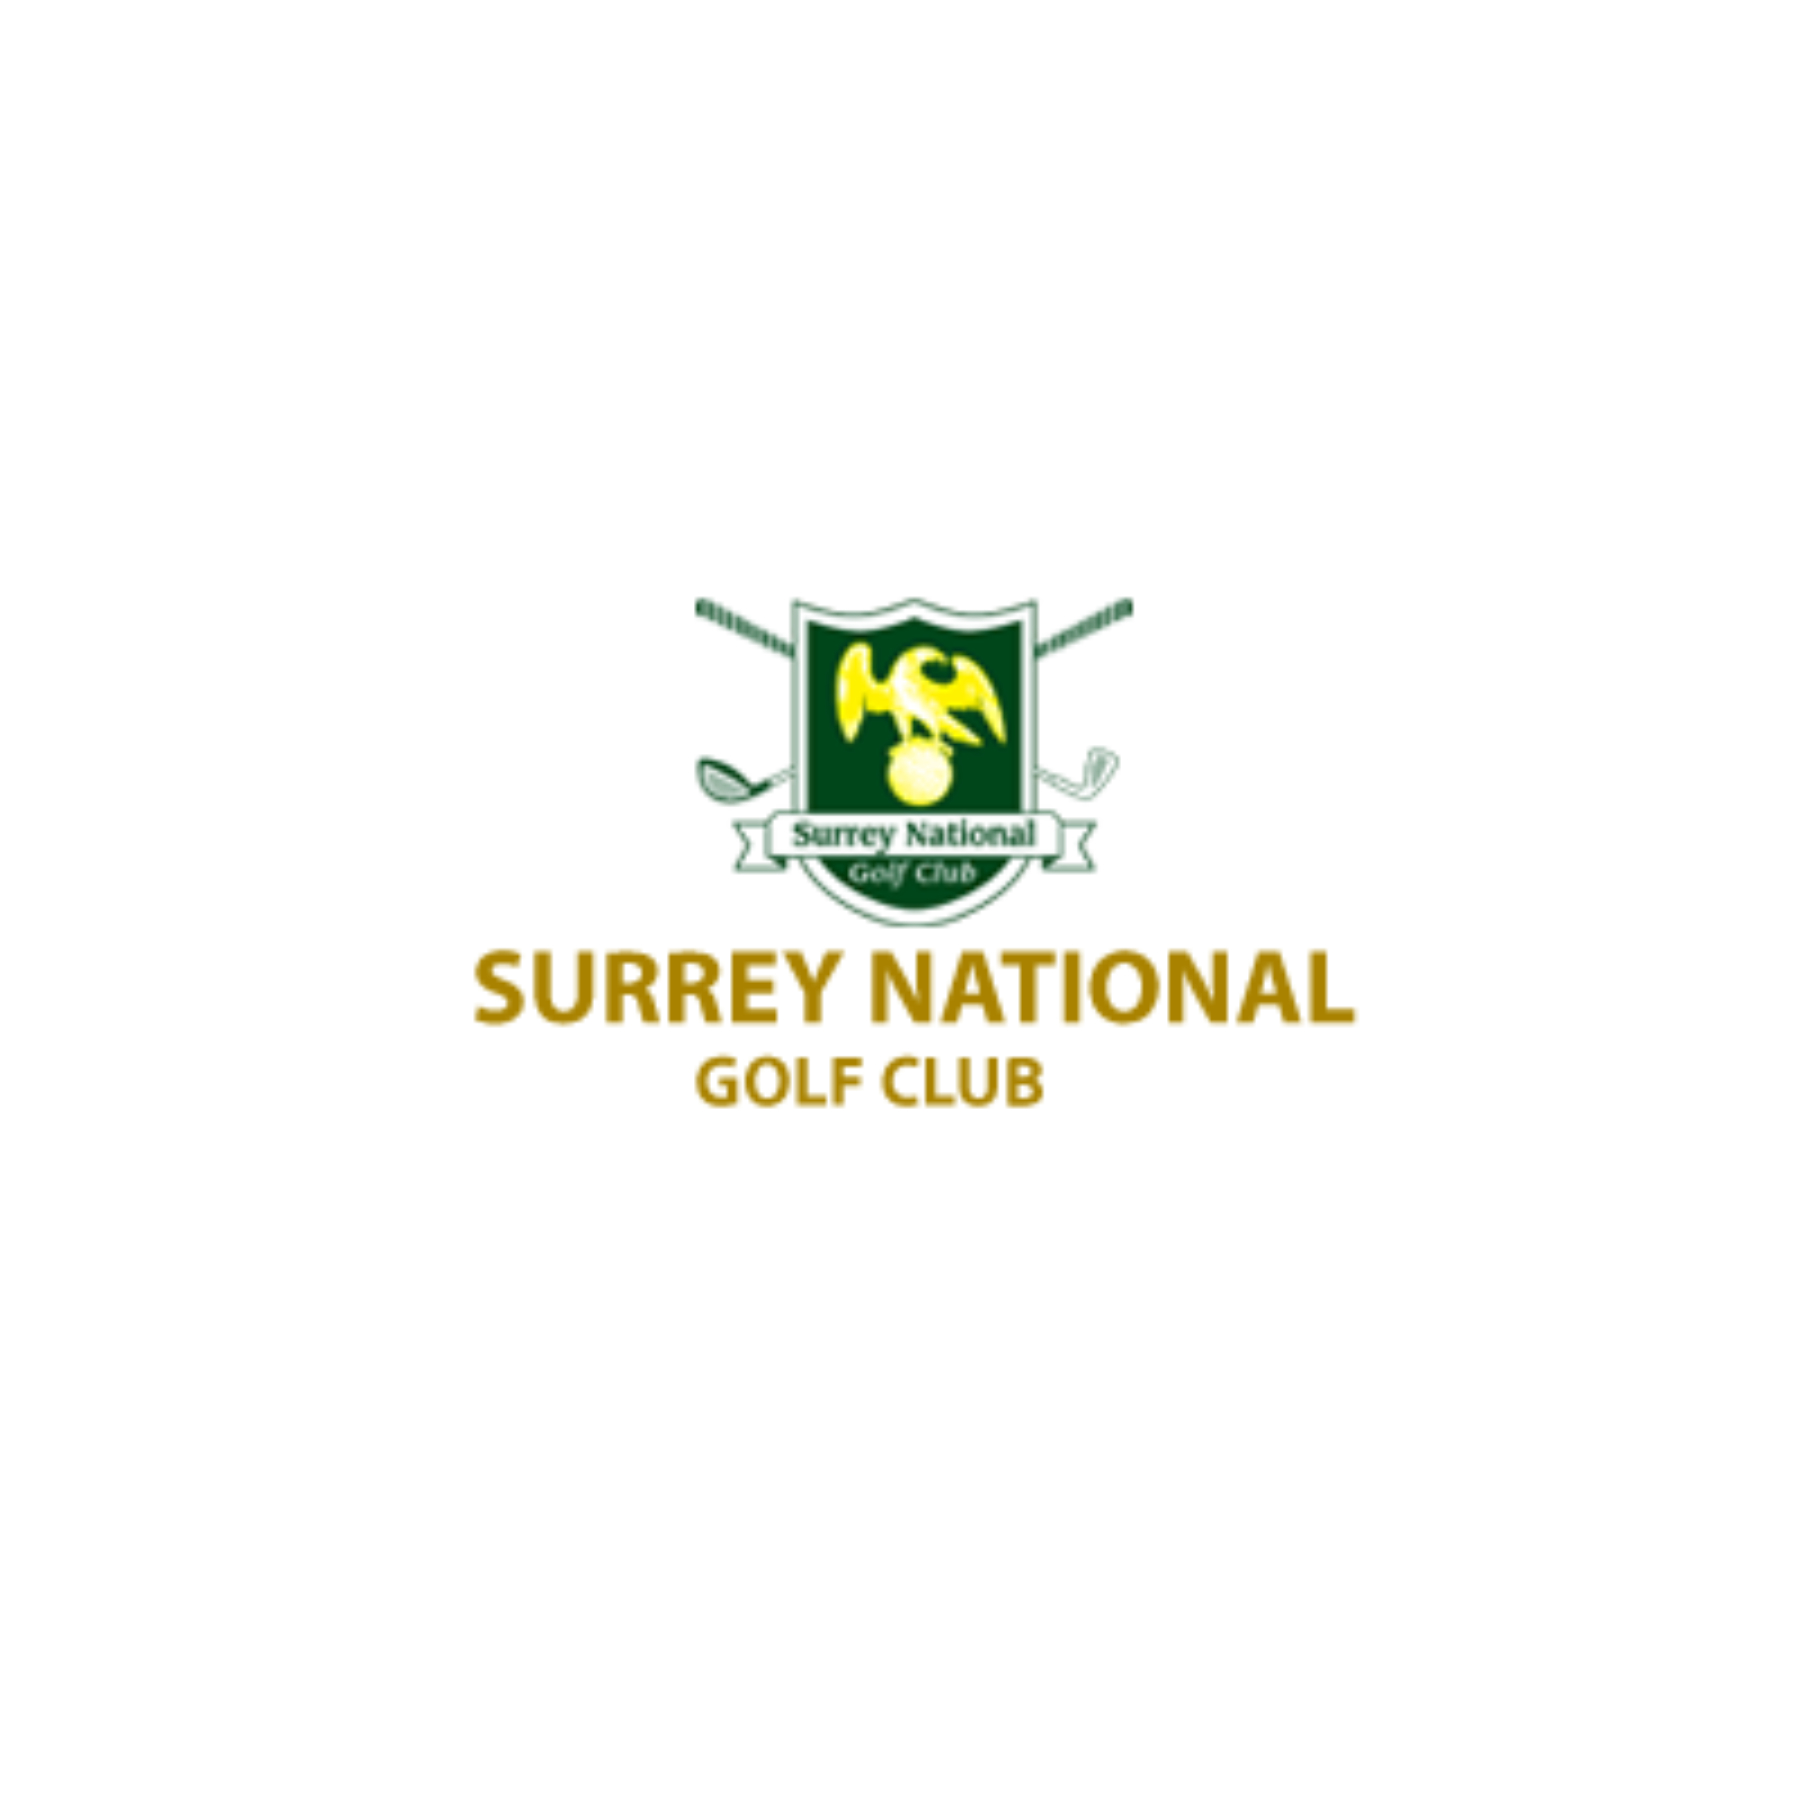 Surrey National Golf Club - A beautiful venue in the heart of the Golf Course, giving you perfect views as you look out on the scenic landscape from the purpose built ceremony room or the beautifully decorated function room. A perfect wedding for larger weddings.